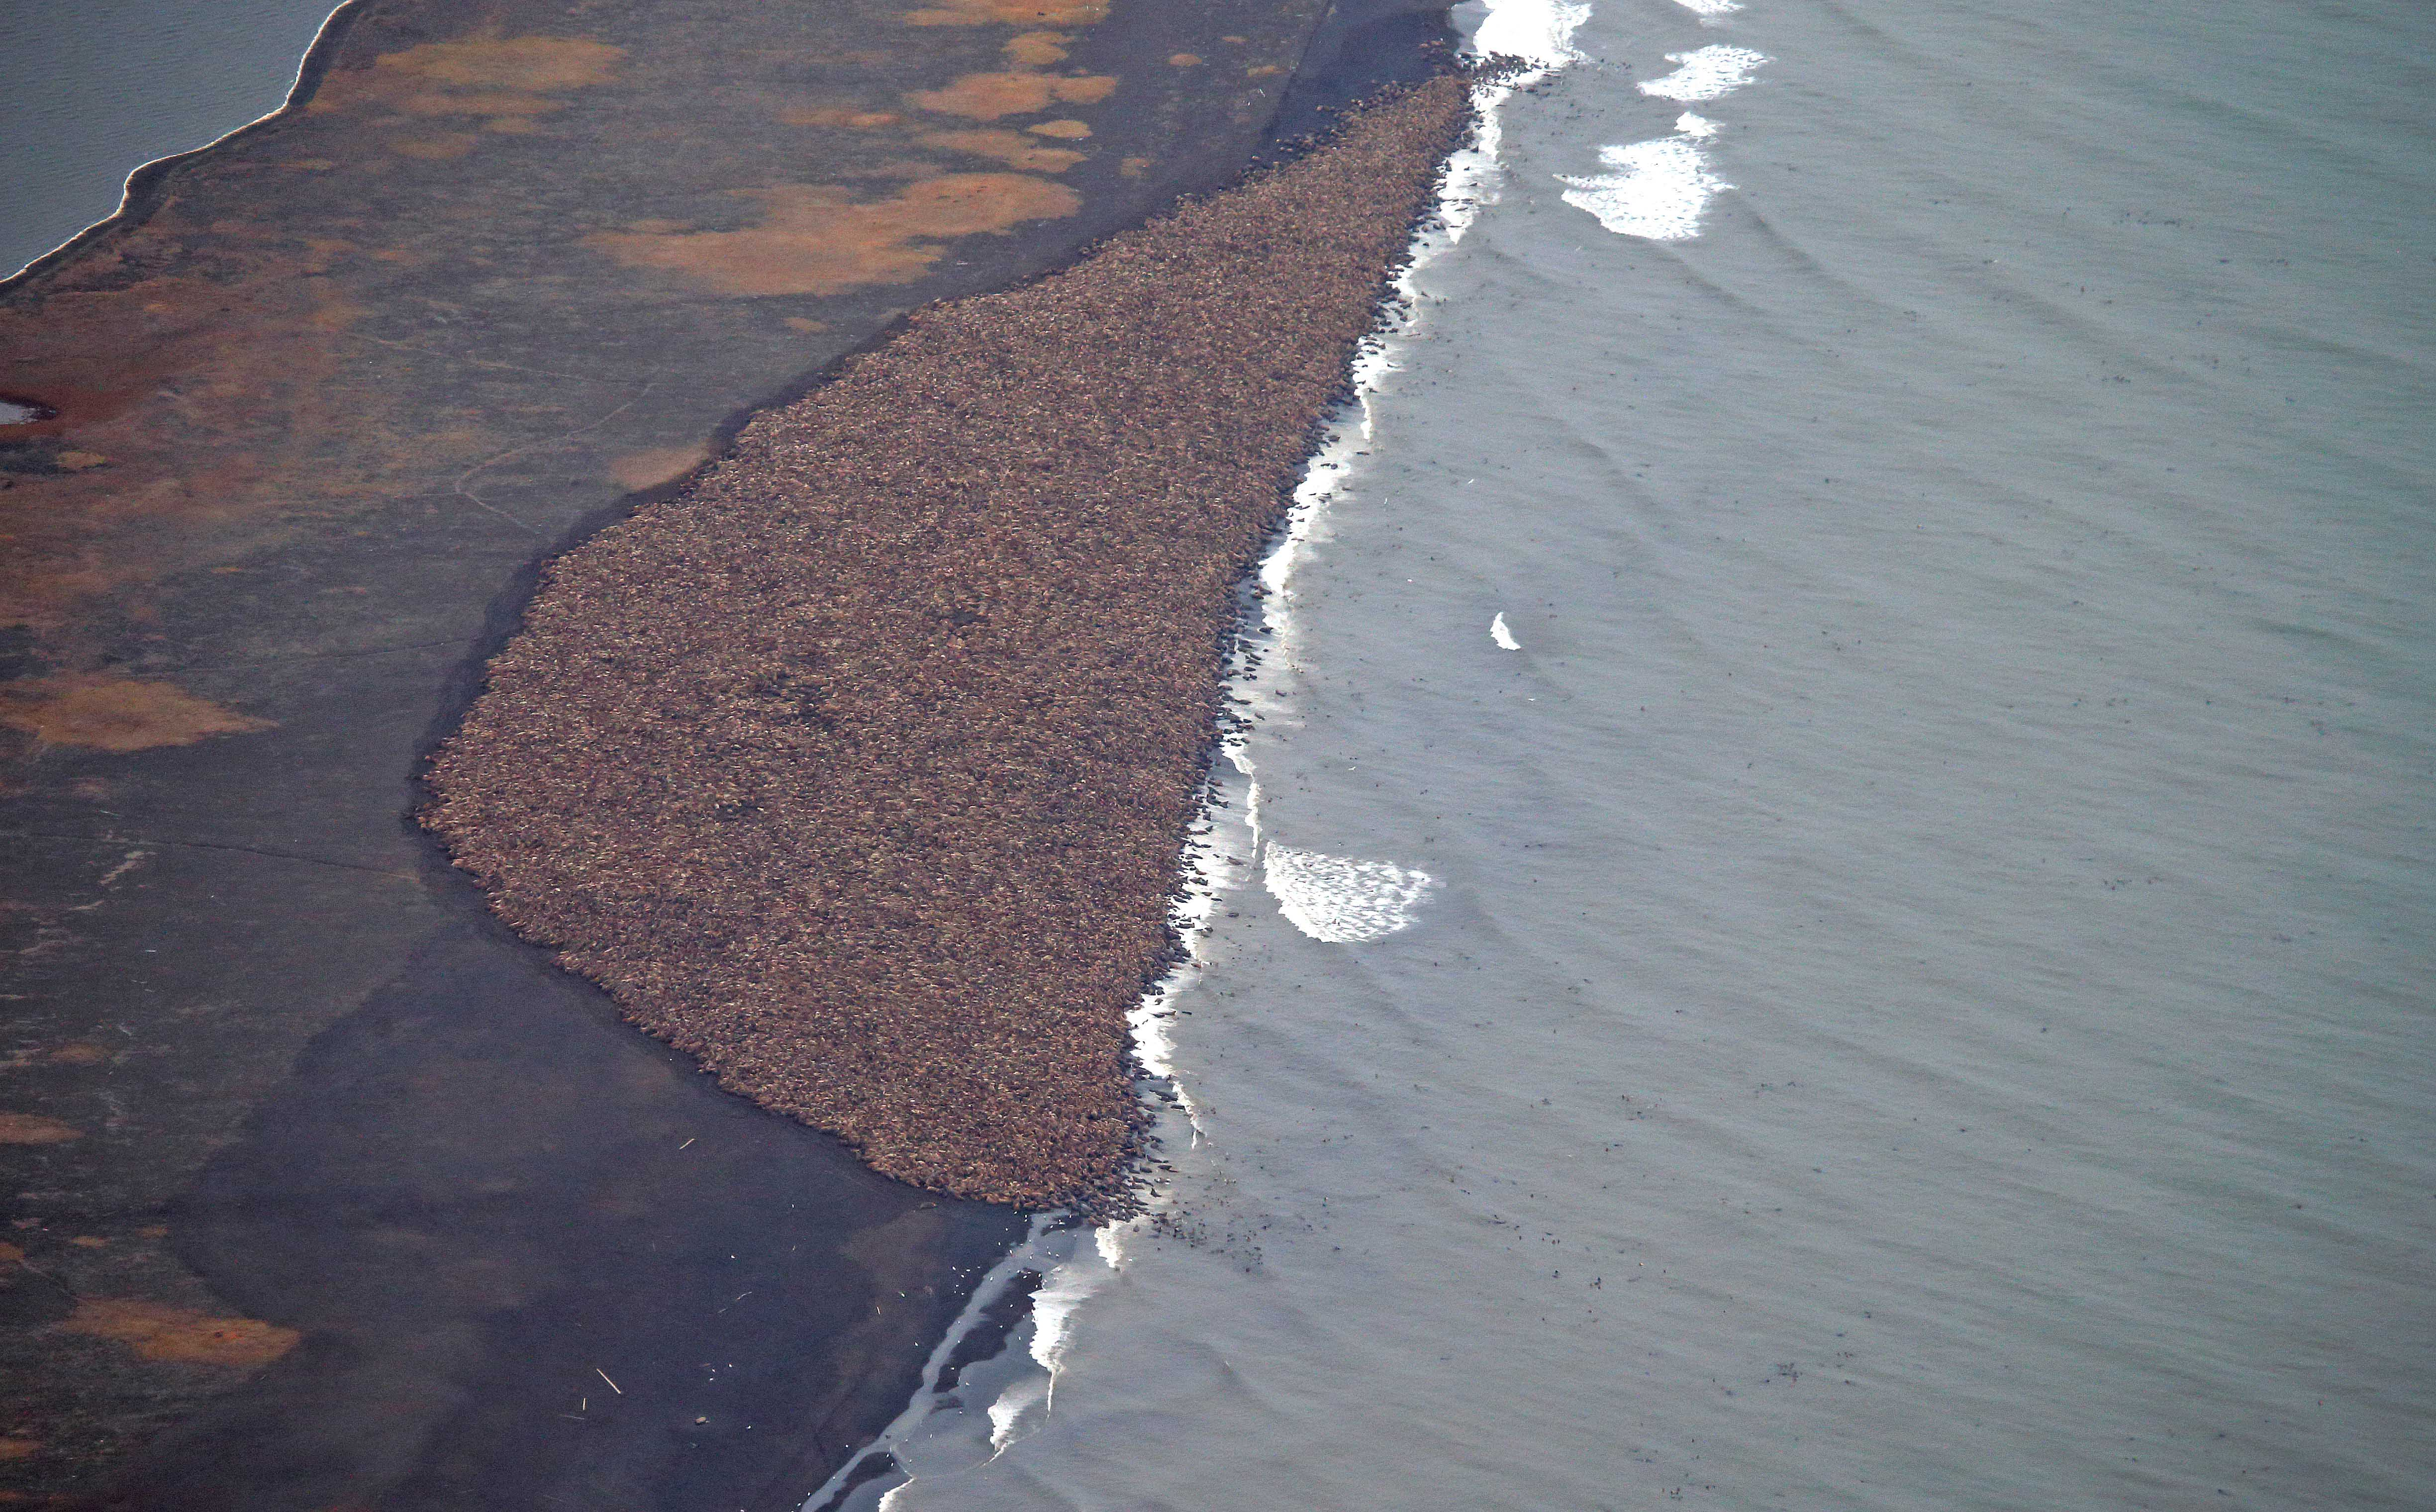 Thousands of walruses are all crowded together in one spot — and it signals something ominous